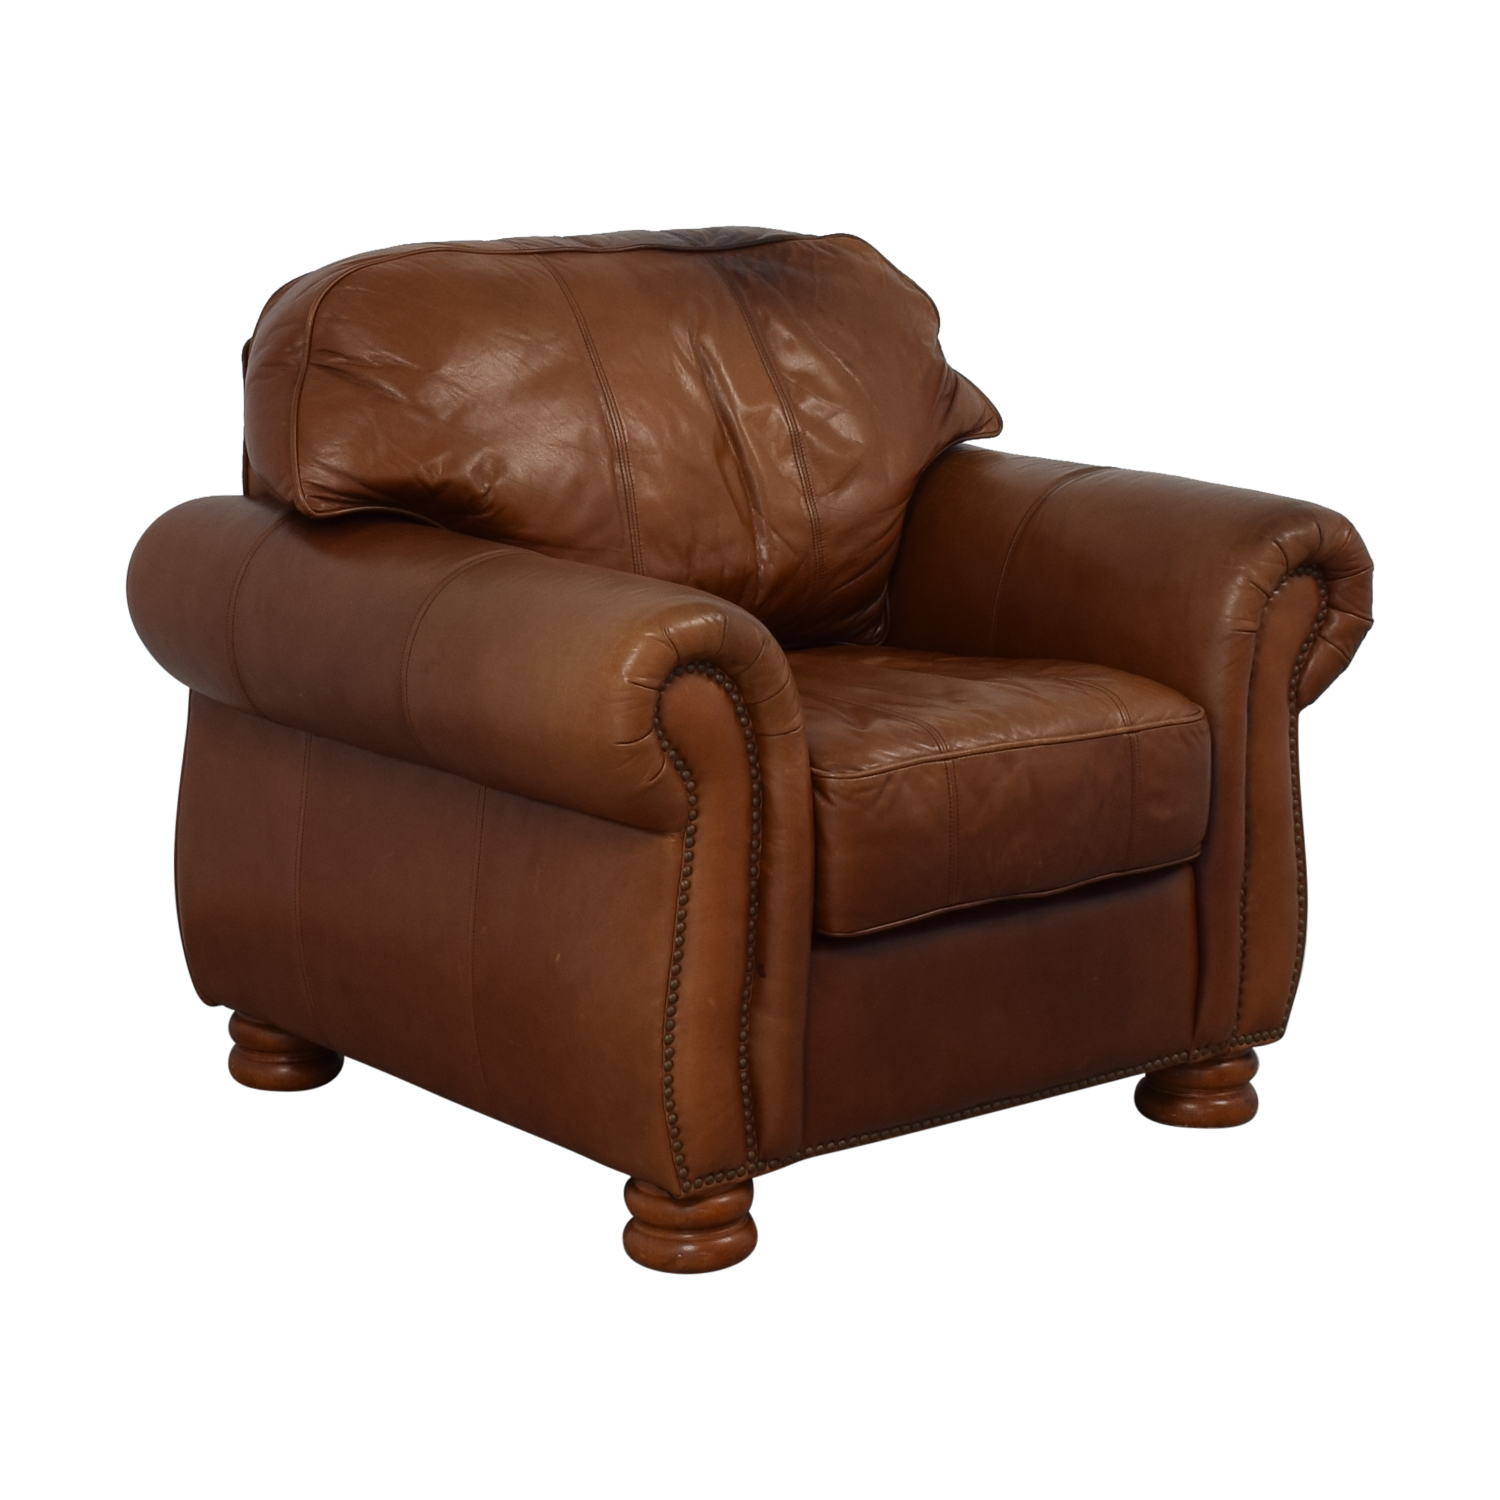 Thomasville Thomasville Leather Sofa Chair Accent Chairs